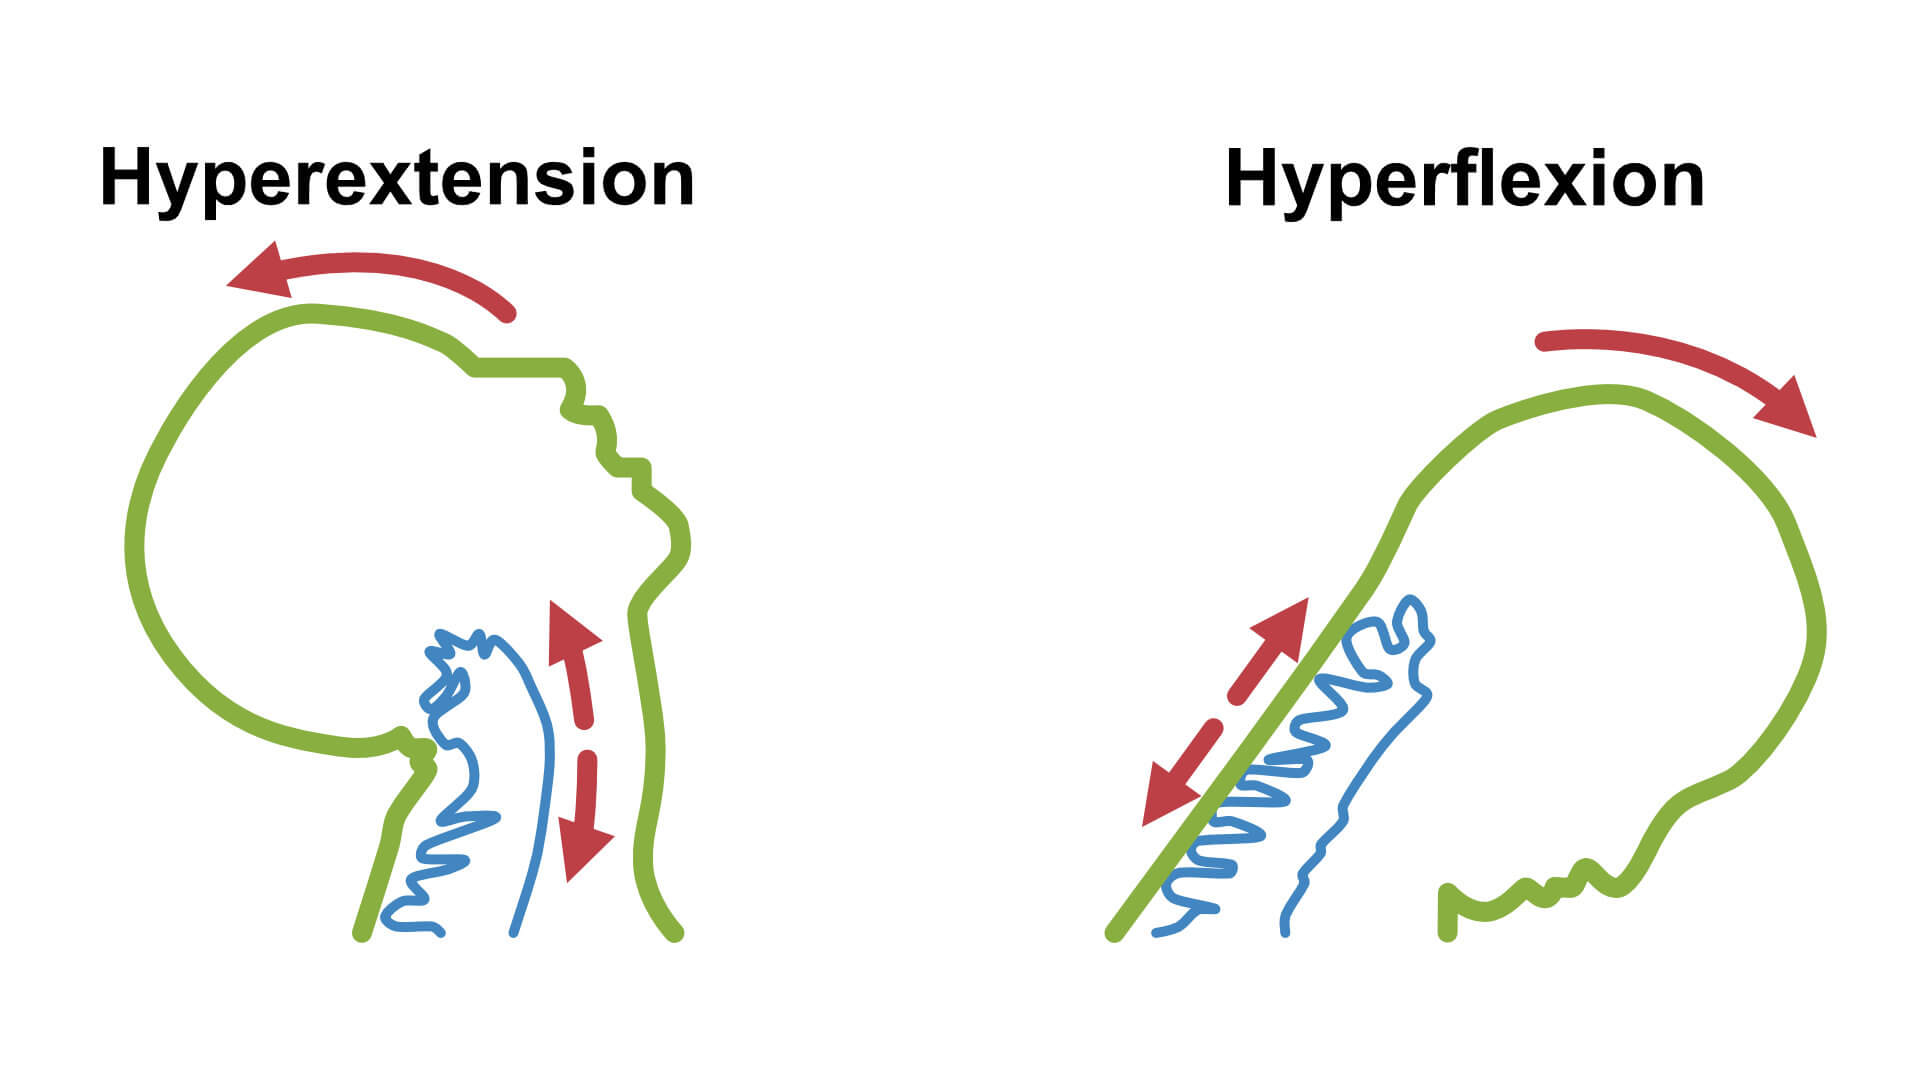 Whiplash hyper extension and hyperflexion